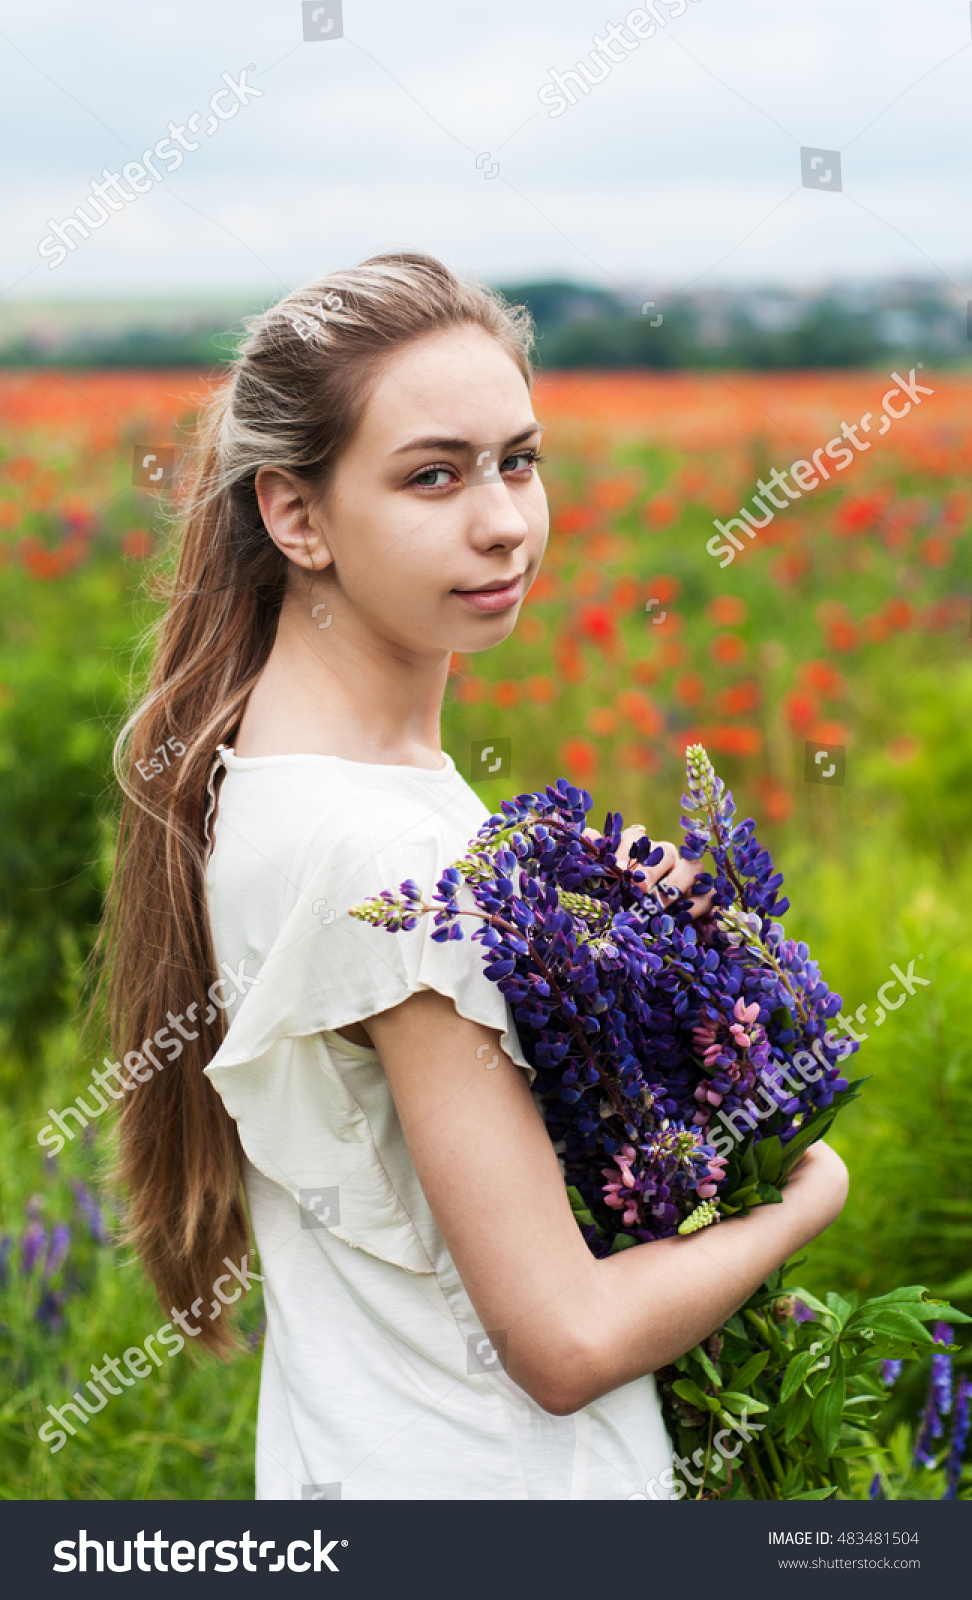 Beautiful Girl With Bouquet Of Lupine Flowers In Hands Ez Canvas